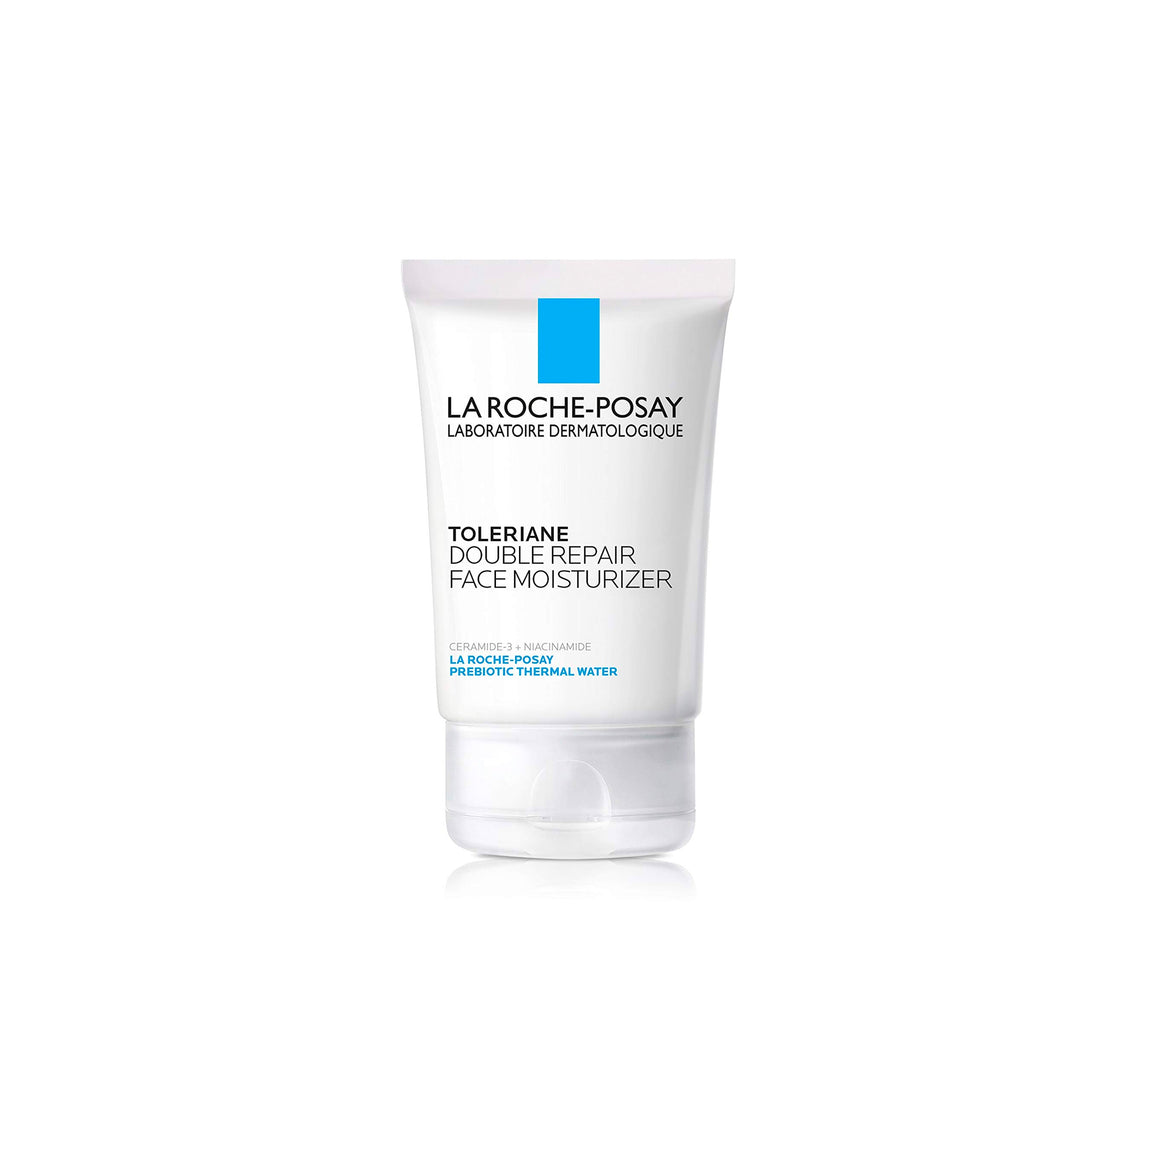 TOLERIANE DOUBLE REPAIR FACIAL MOISTURIZER WITH SPF